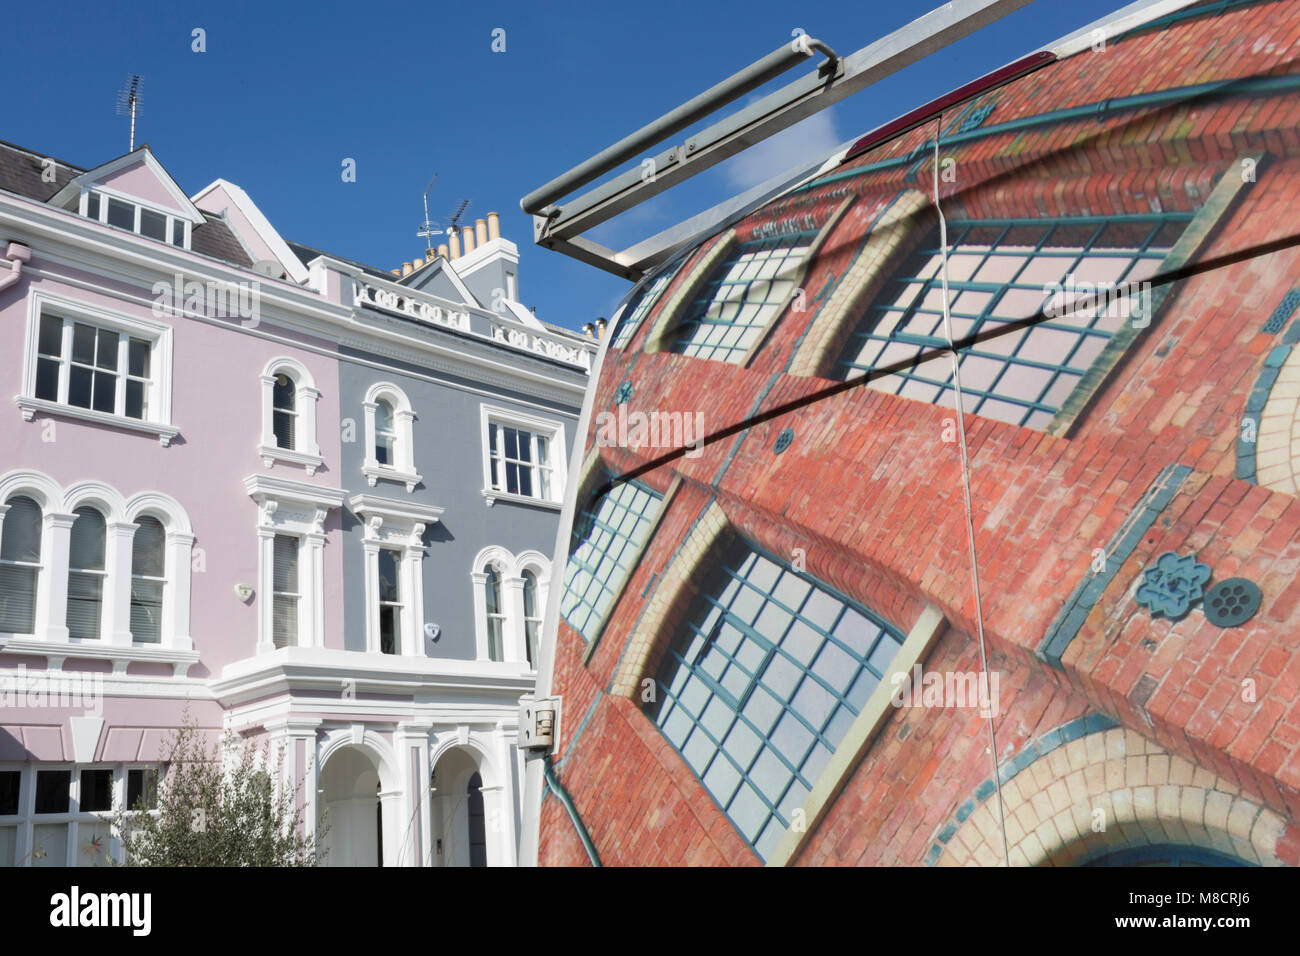 The design on the rear doors of a bespoke window company's van and Victorian houses along Elgin Crescent W11 in Stock Photo